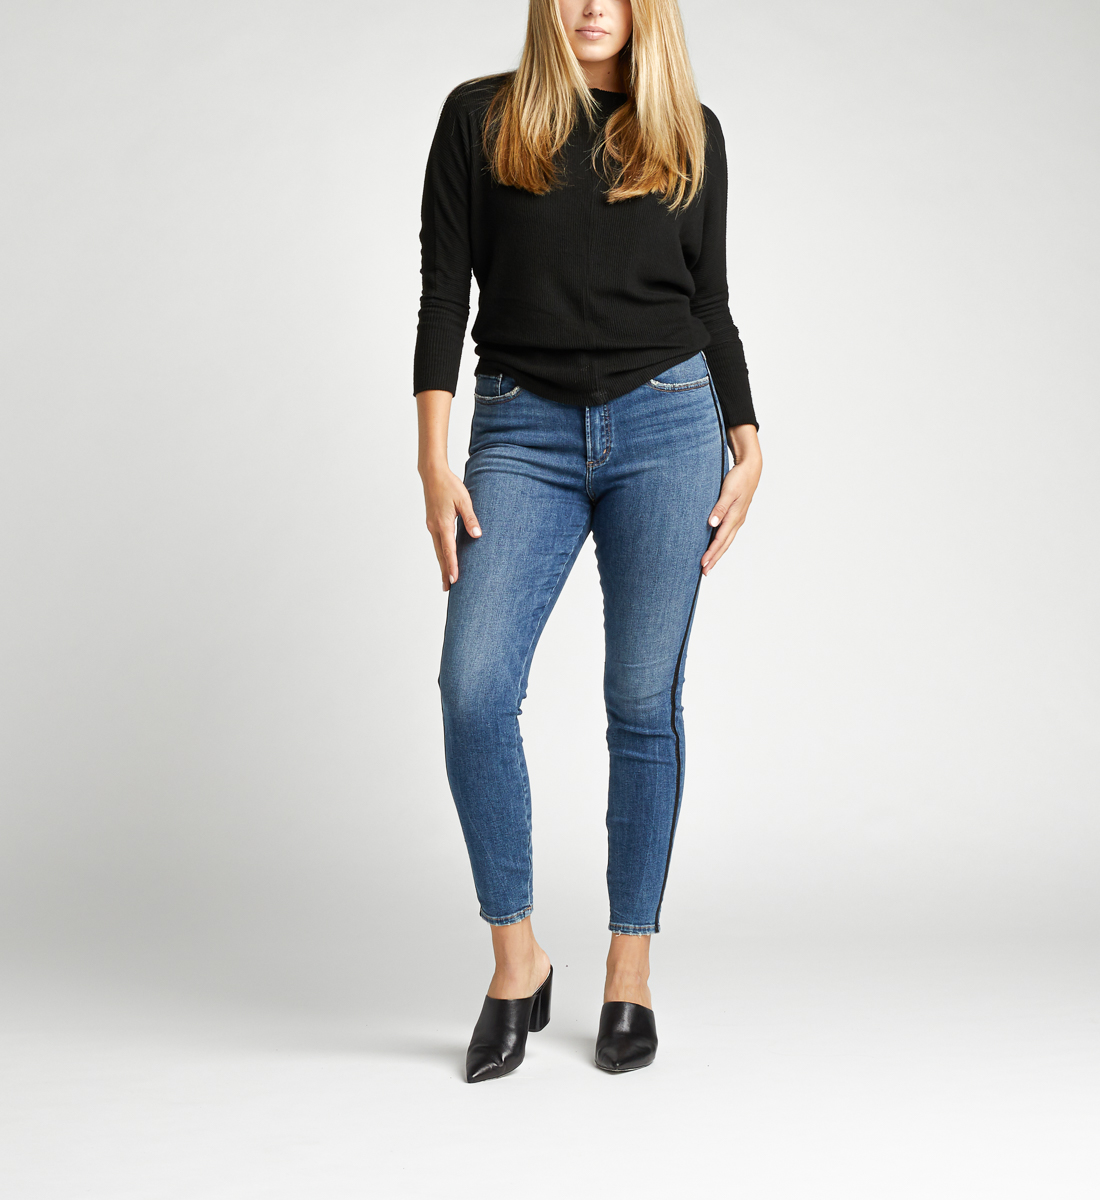 Silver Jeans Calley Super High Rise Skinny Jeans